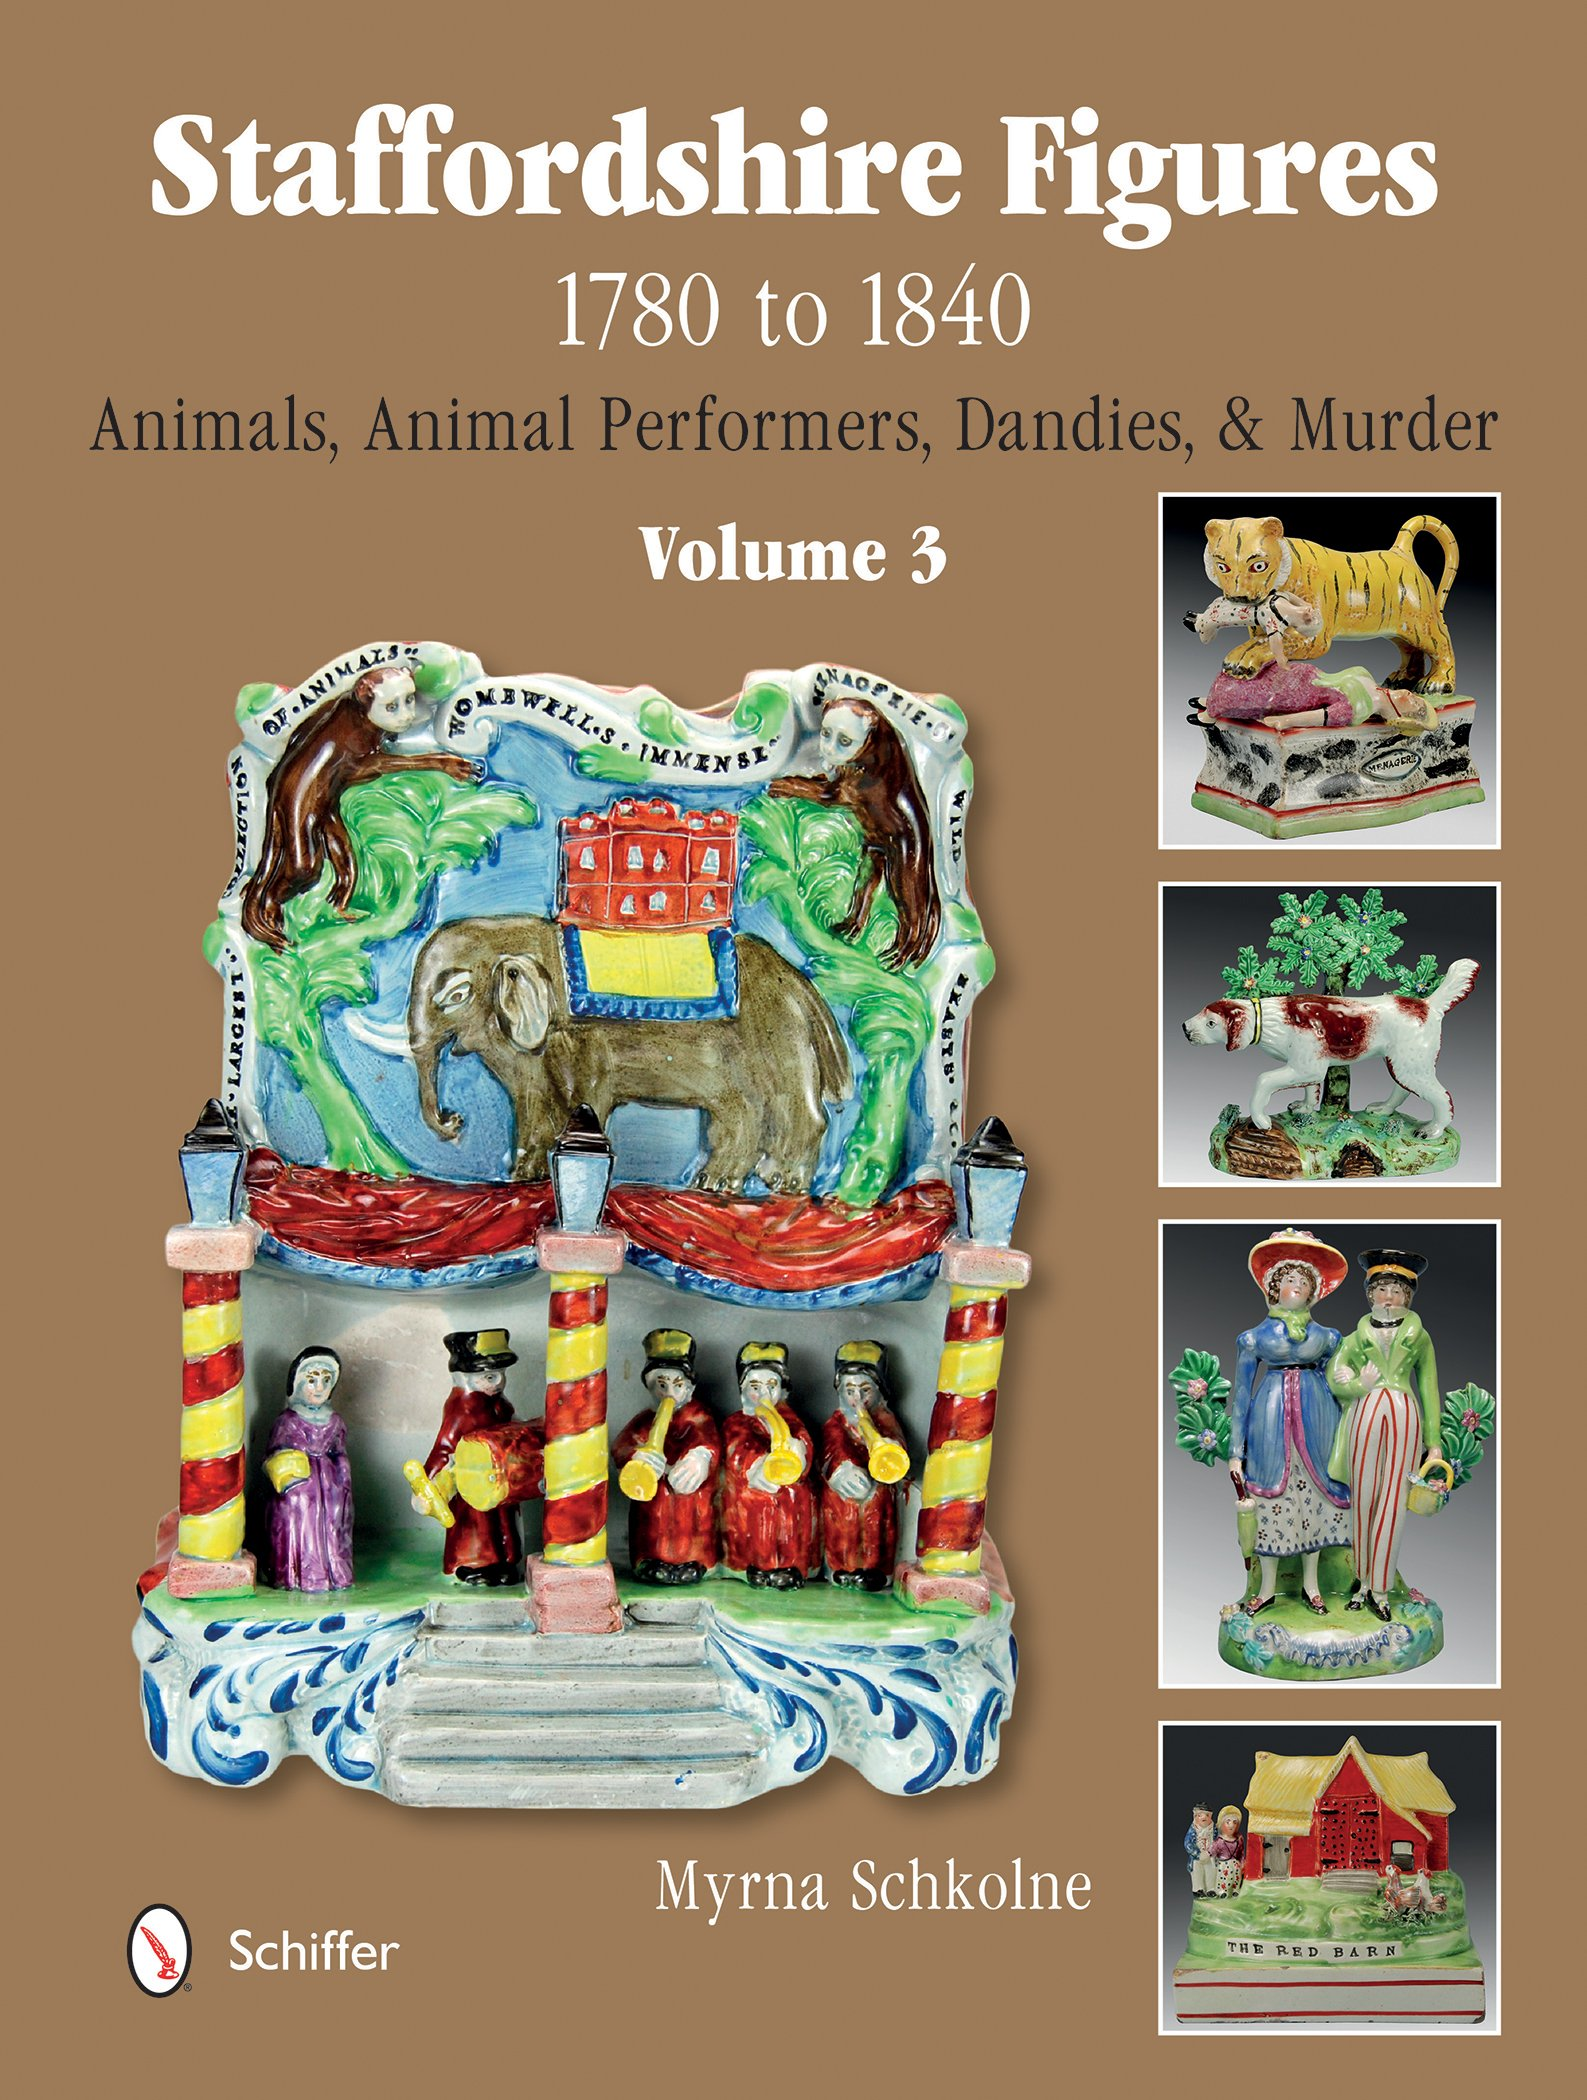 Staffordshire Figures 1780 to 1840 Volume 3: Animals, Animal Performers, Dandies, and Murder